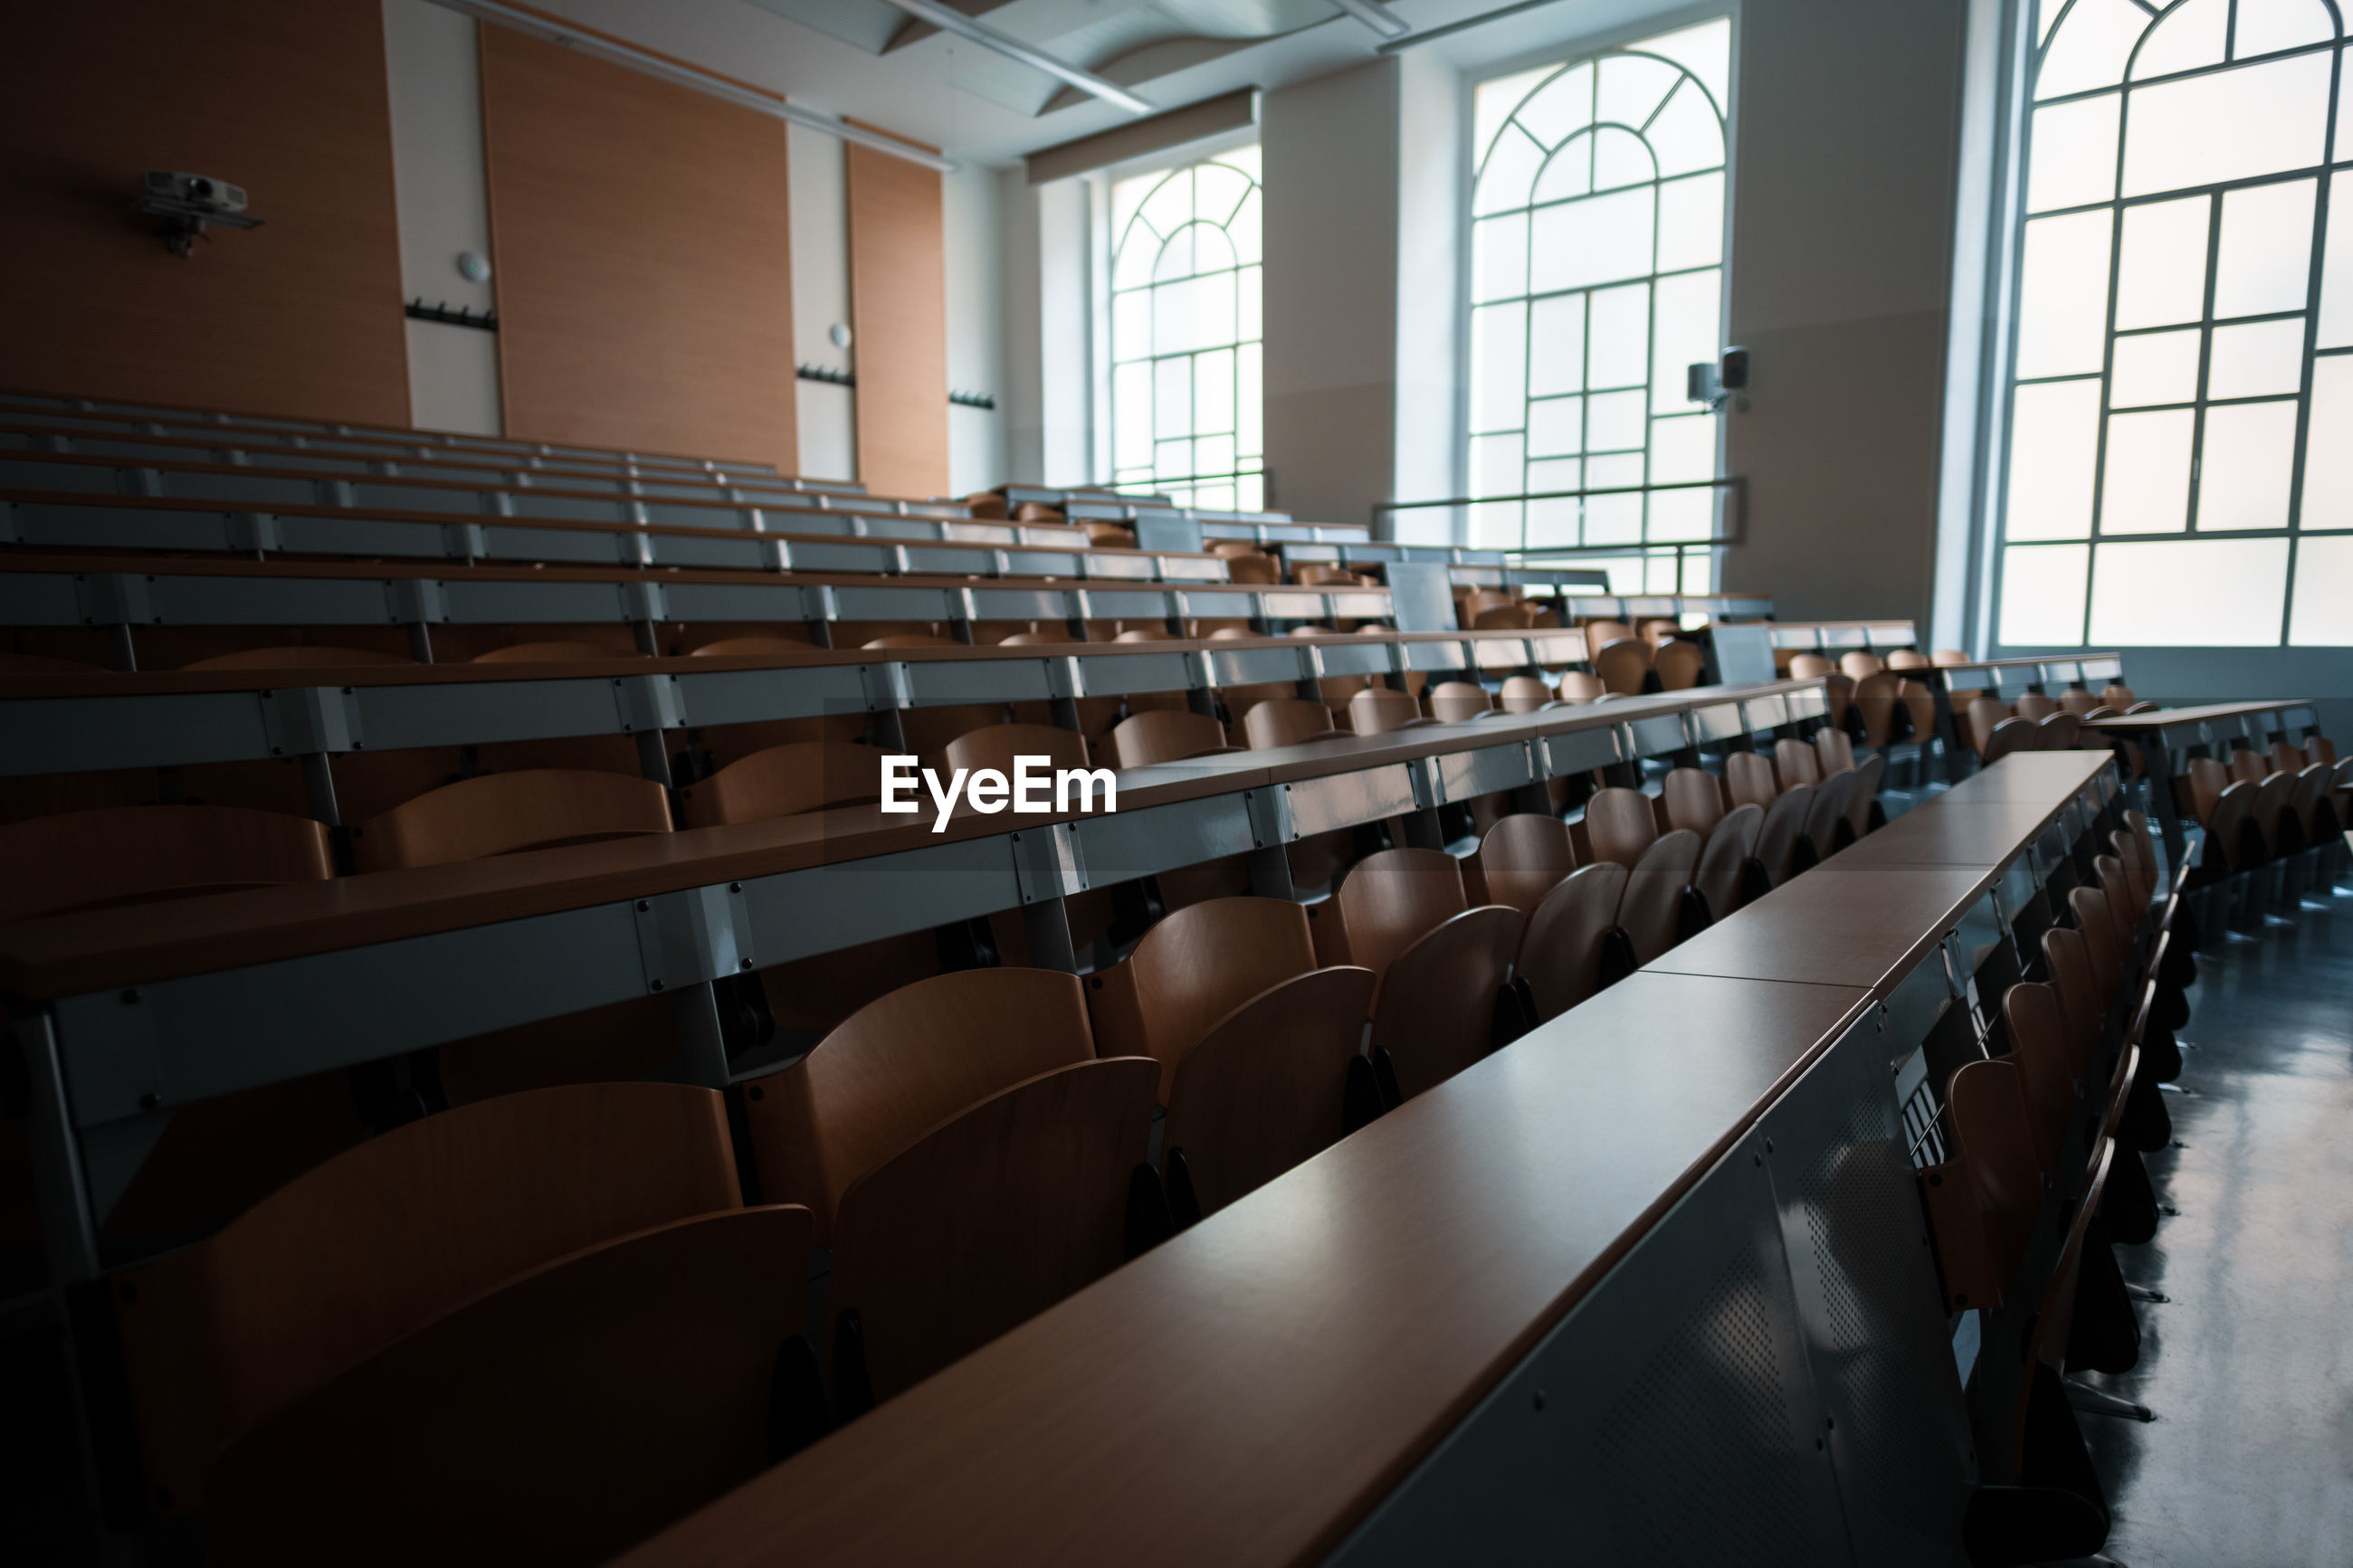 EMPTY CHAIRS AND TABLES IN A ROOM